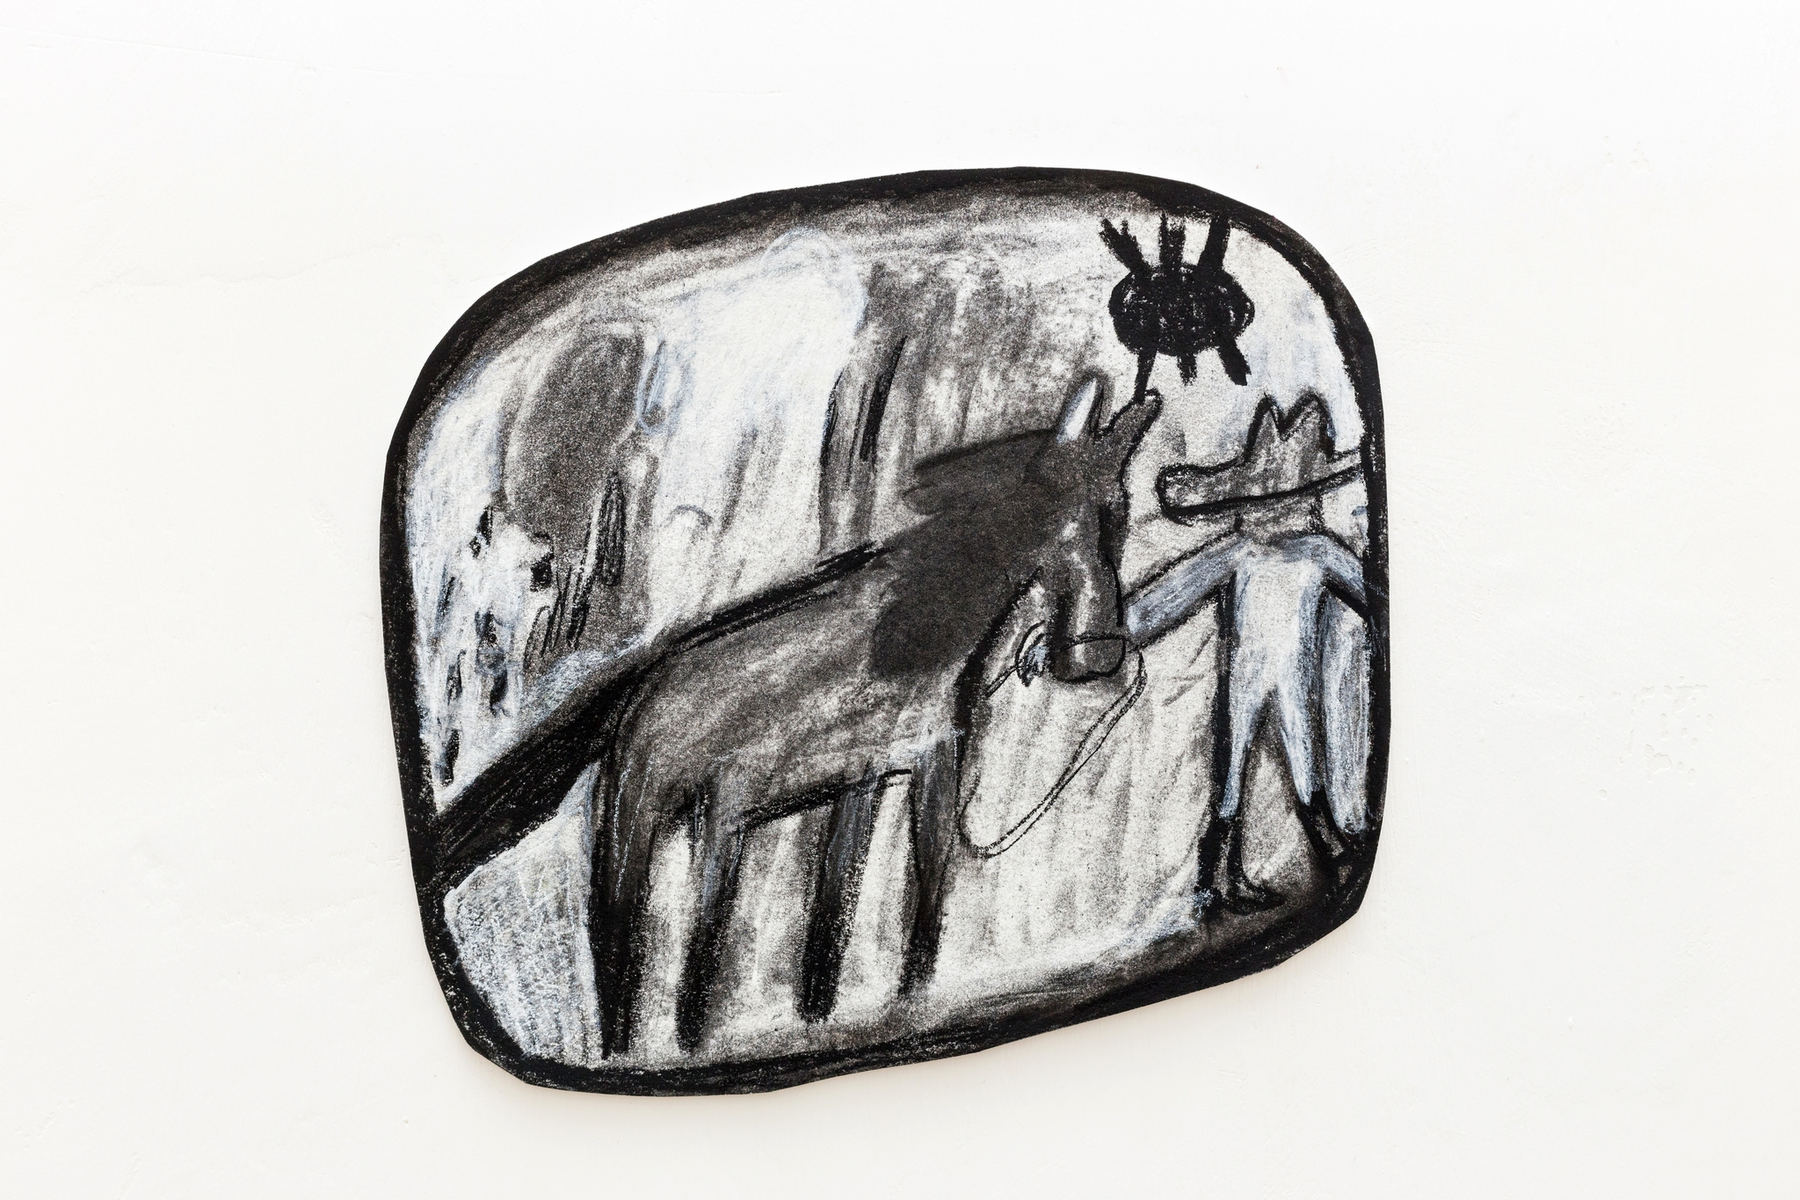 K.Lipscomb Leading a horse to water2016 charcoal and conte crayononpaper